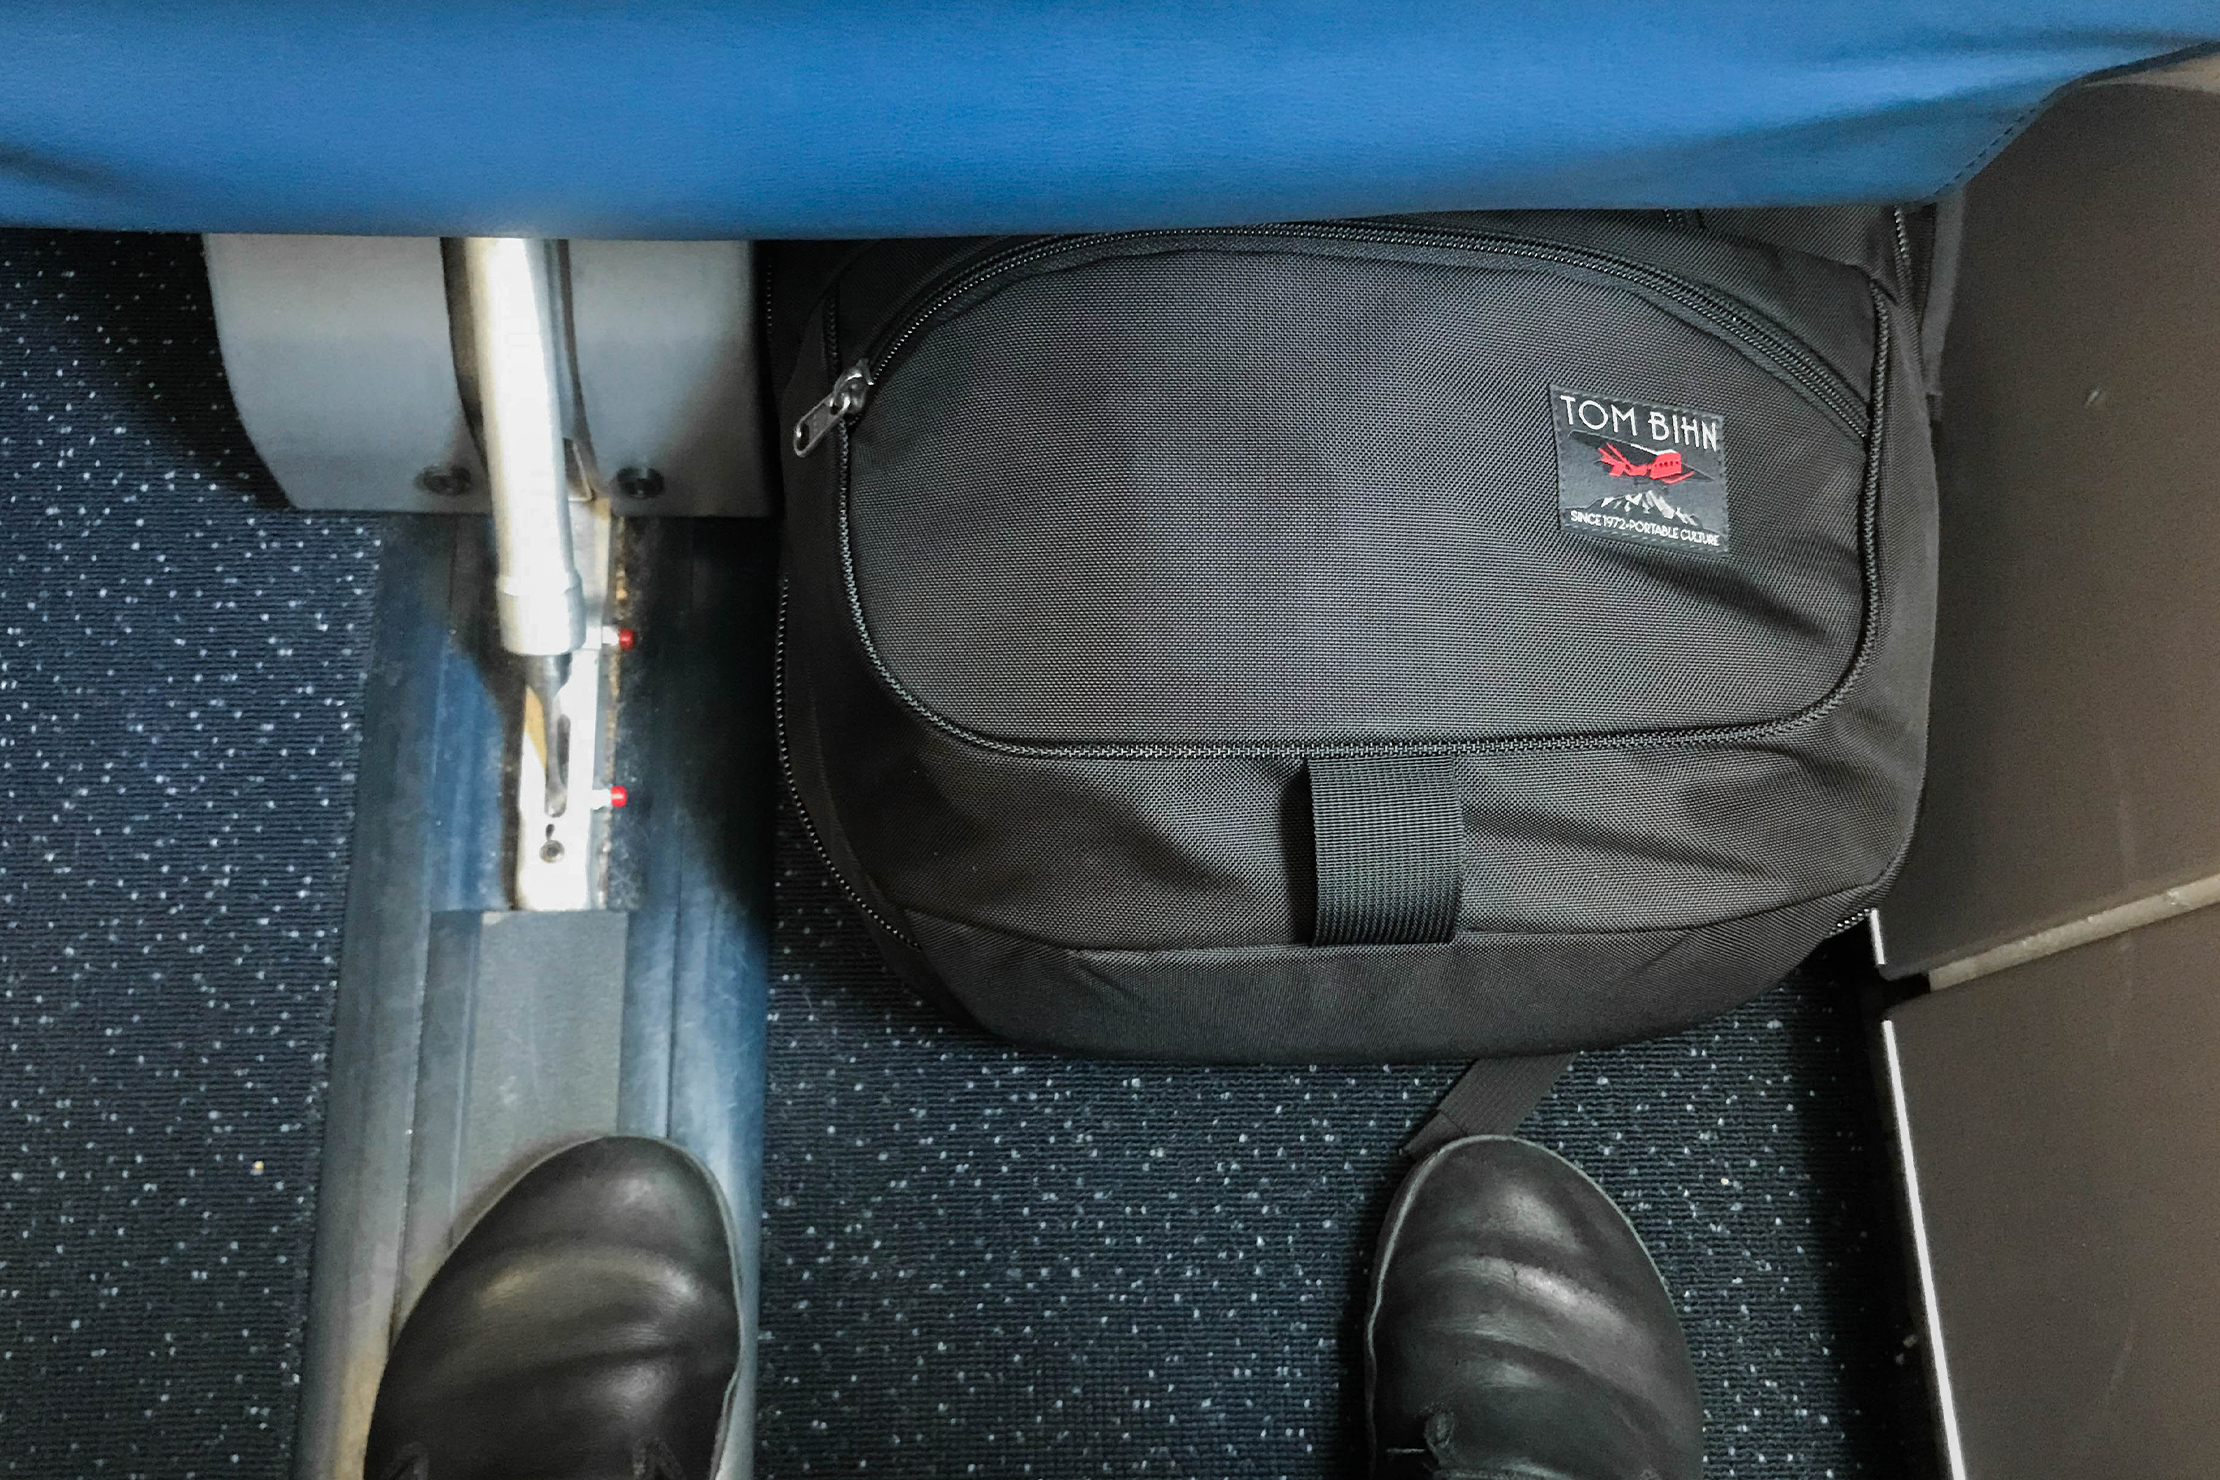 Tom Bihn Synik 30 Under An Airplane Seat